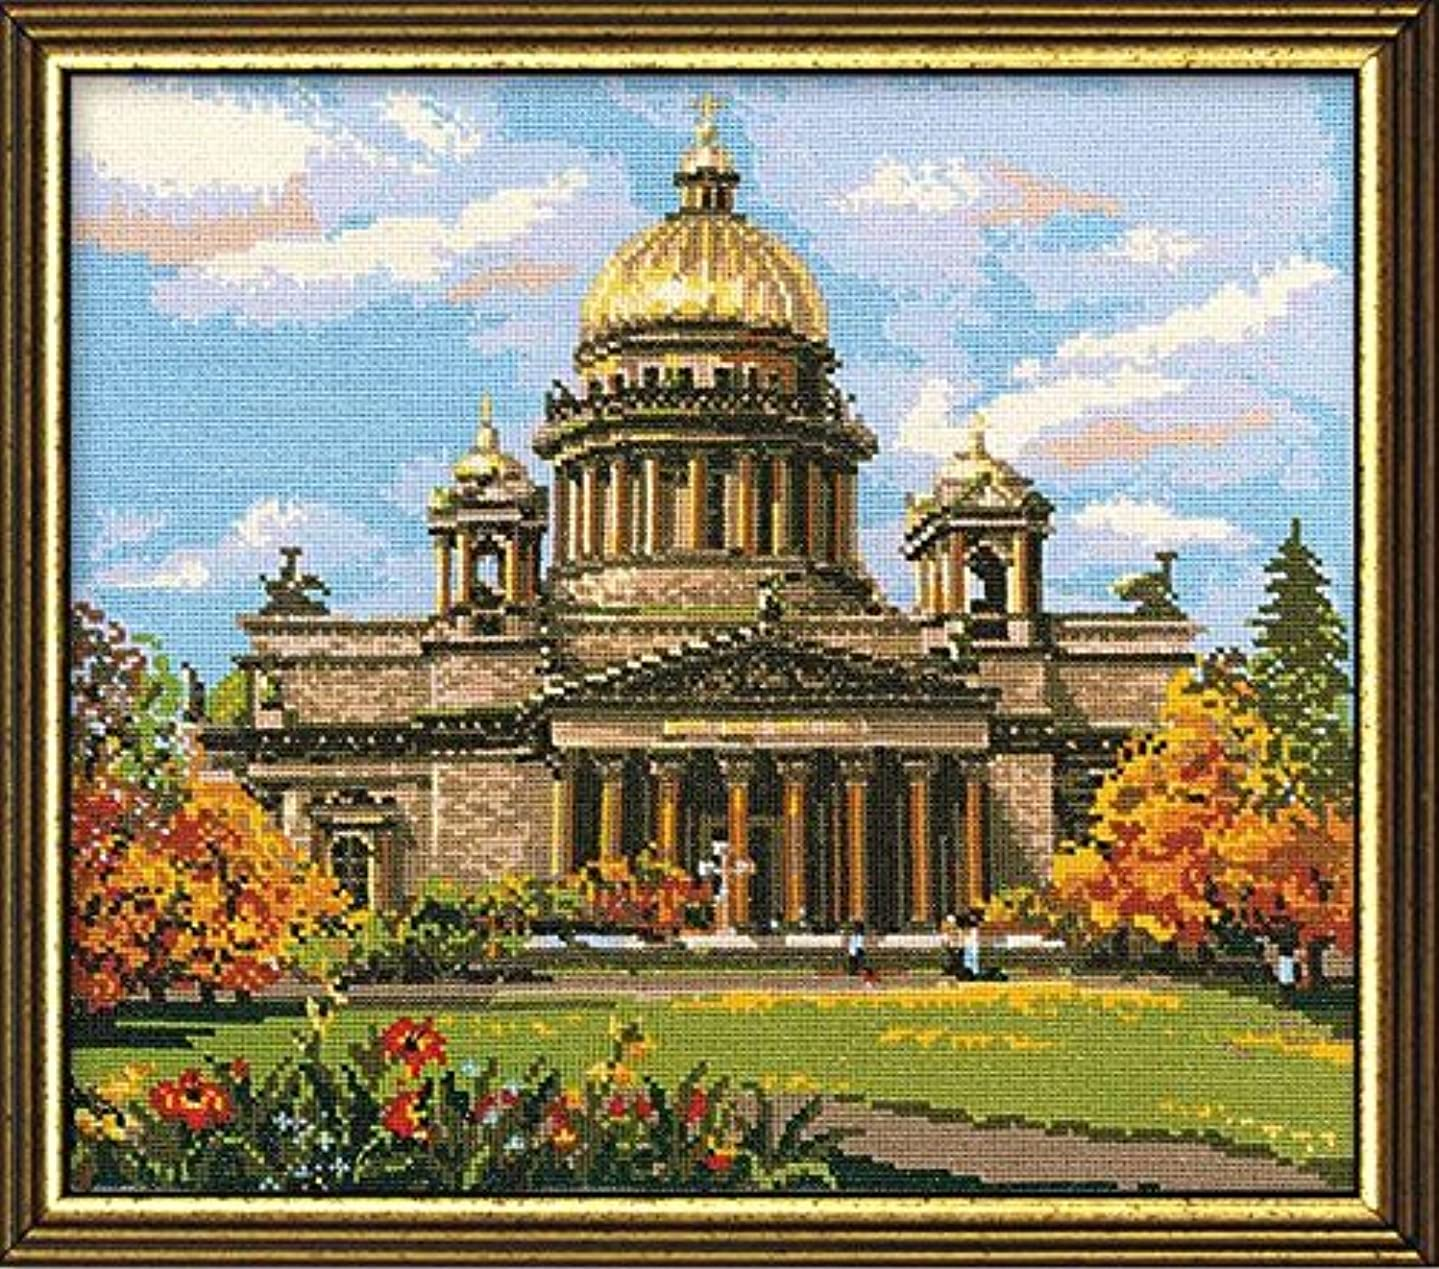 RIOLIS R923 Saint Isaac's Cathedral, St.Petersburg, Russia - Counted Cross Stitch Kit - 18